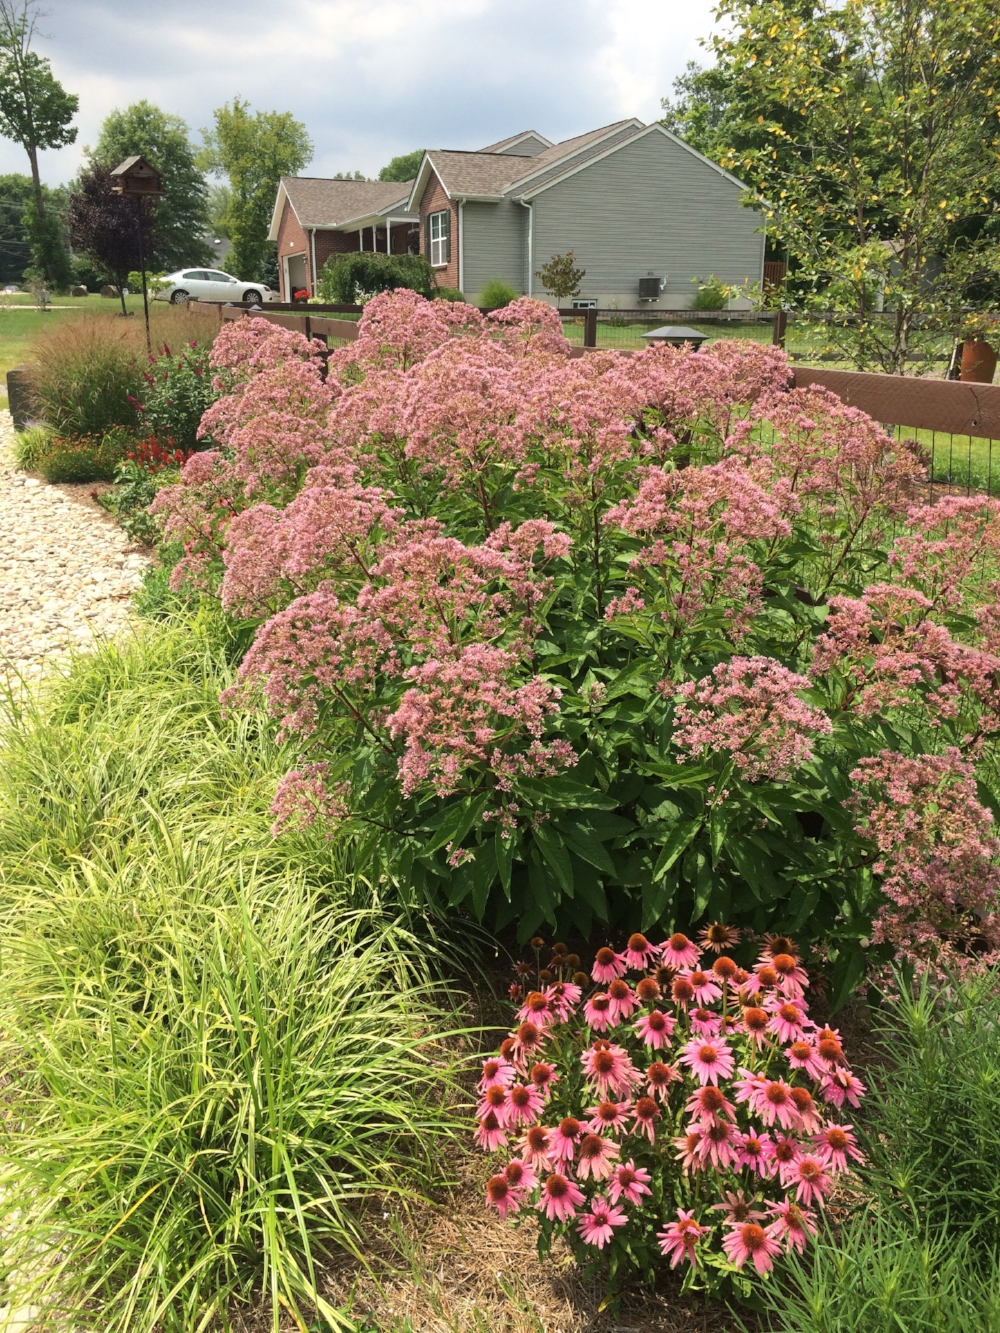 joe pye weed in full bloom along with echinacea - These native plants are thriving!